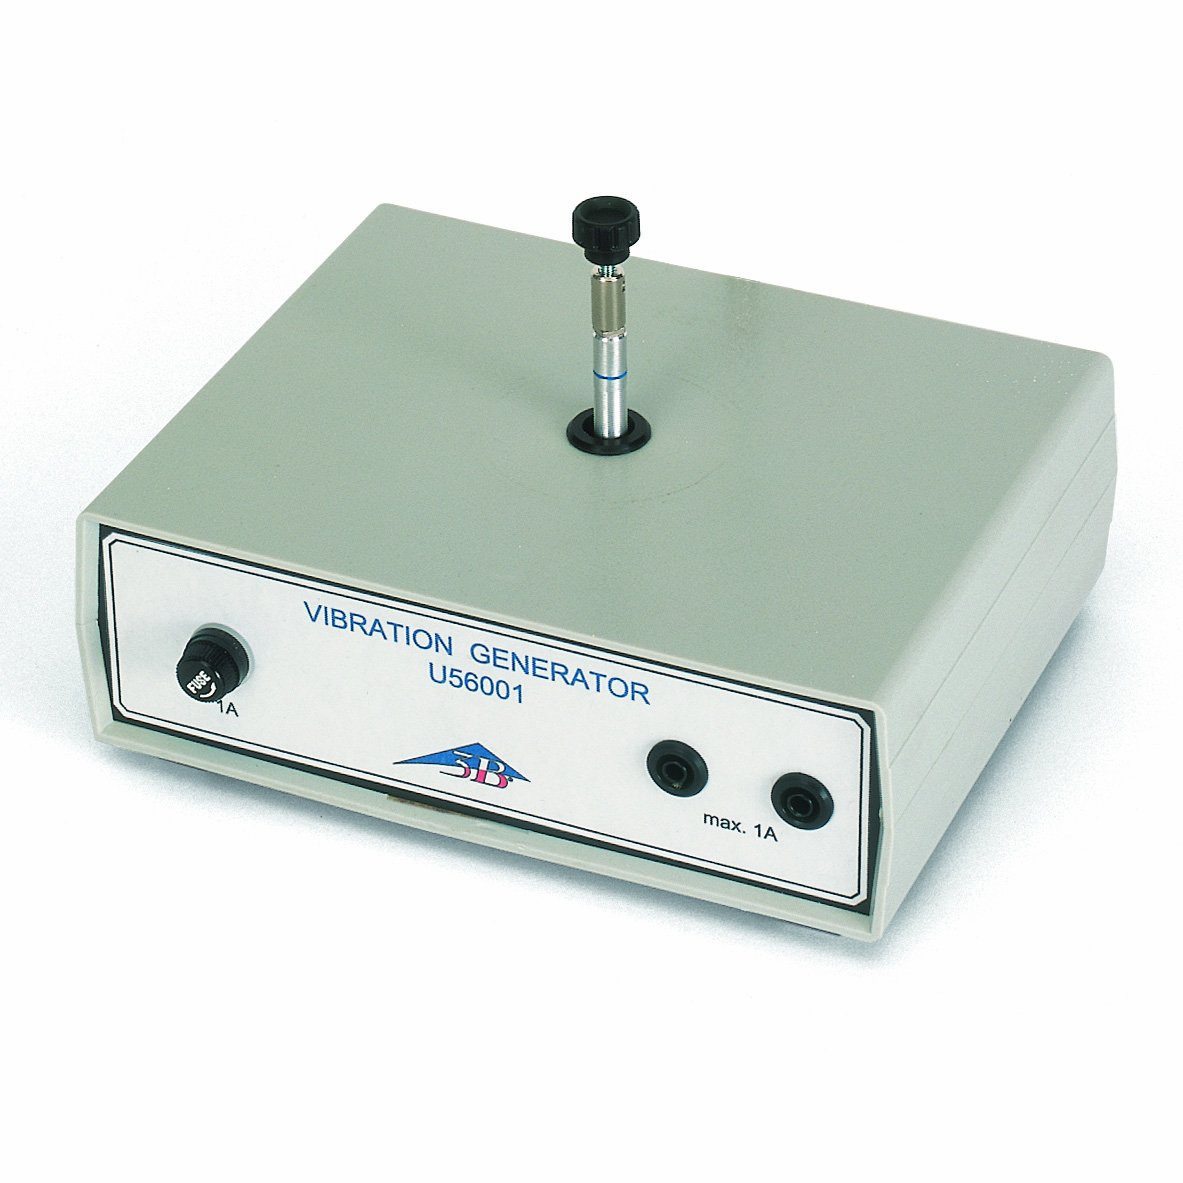 3B Scientific U56001 Vibration Generator, 0 to 20kHz Frequency